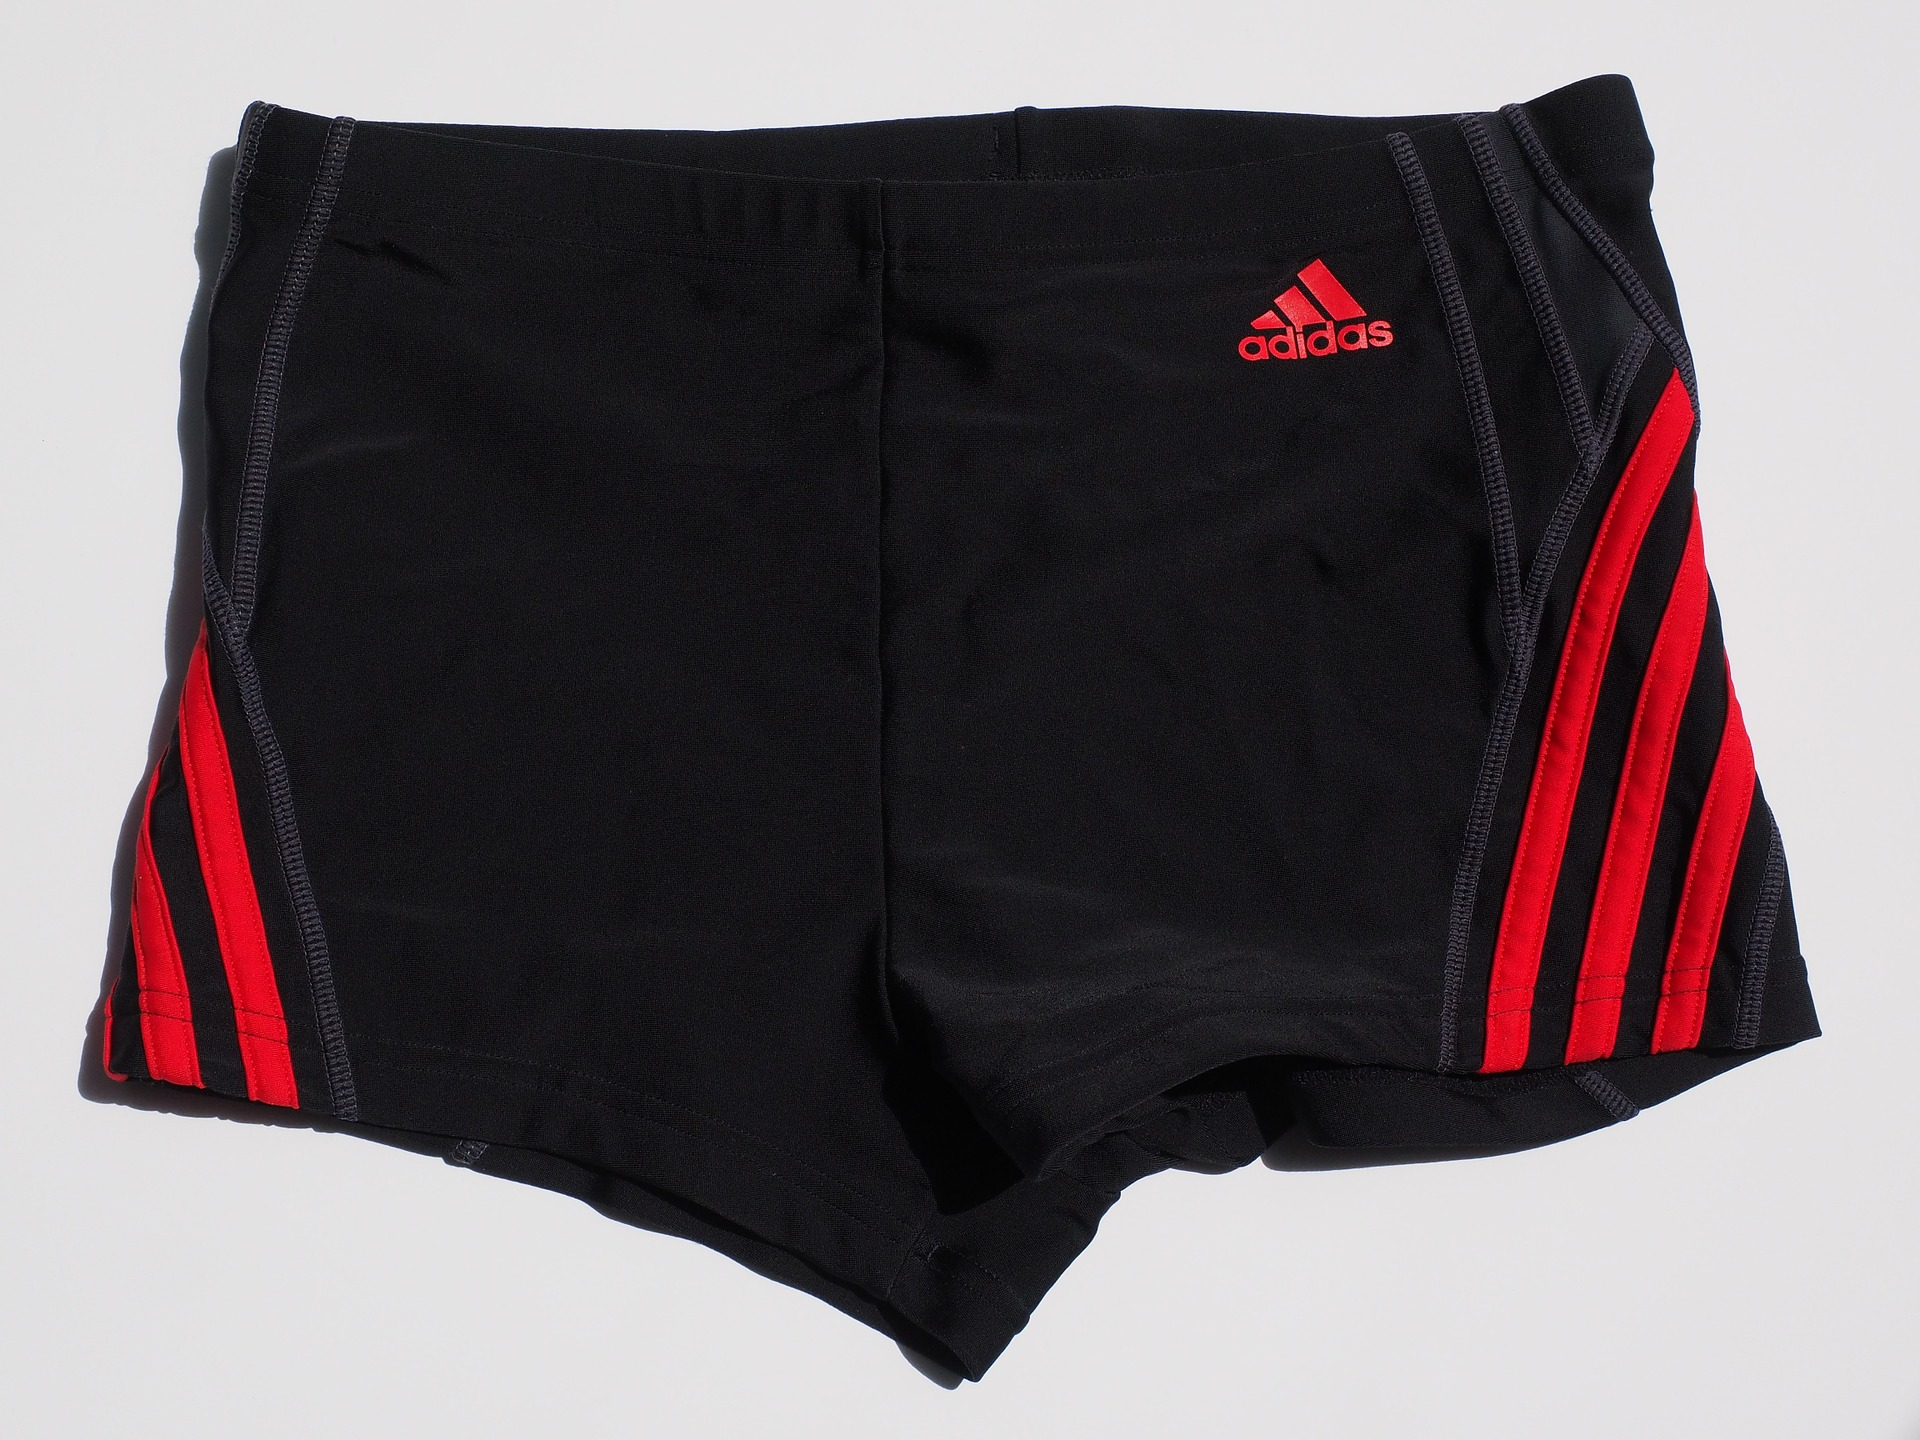 Guide To Buying Black Booty Shorts